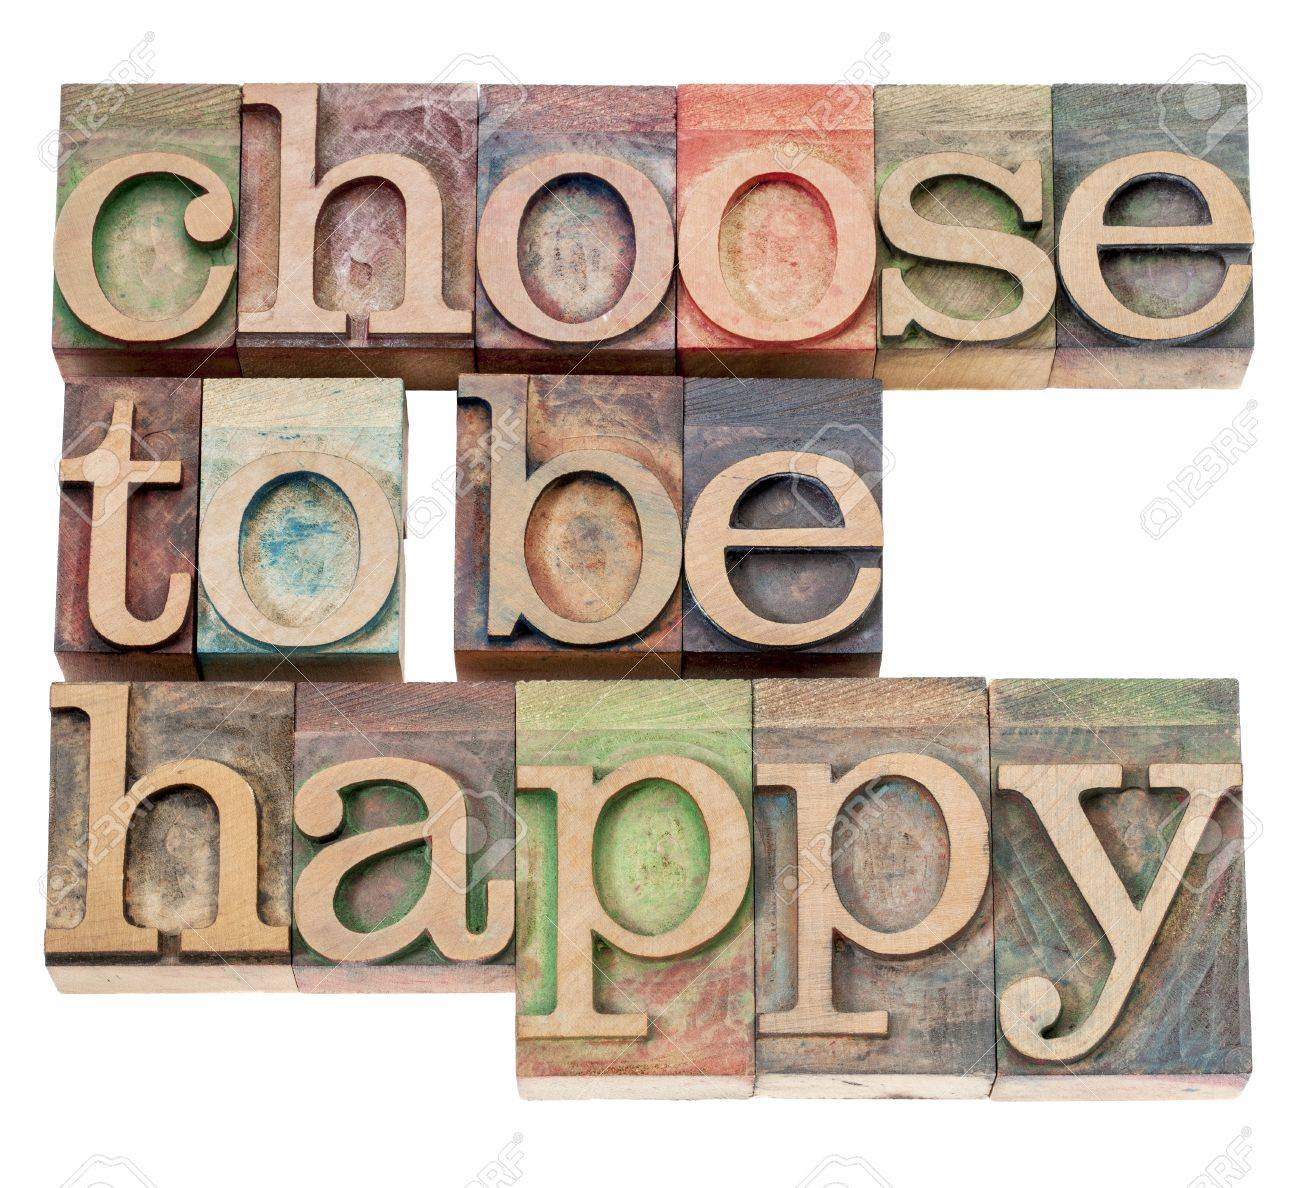 choose to be happy - positivity  concept - isolated text in vintage letterpress wood type Stock Photo - 15814409